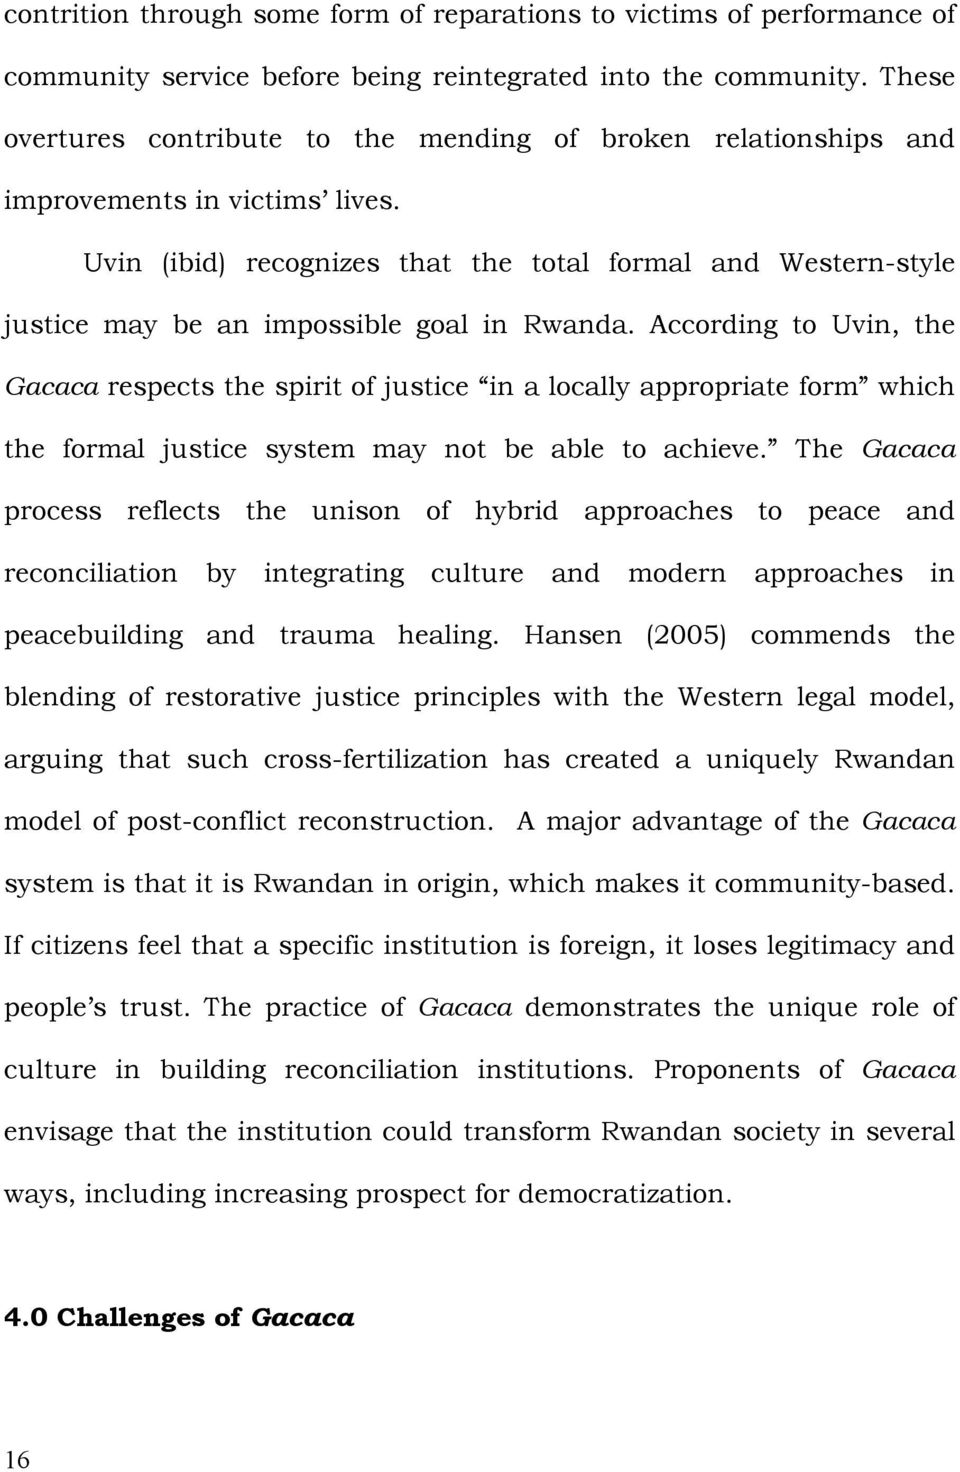 Uvin (ibid) recognizes that the total formal and Western-style justice may be an impossible goal in Rwanda.